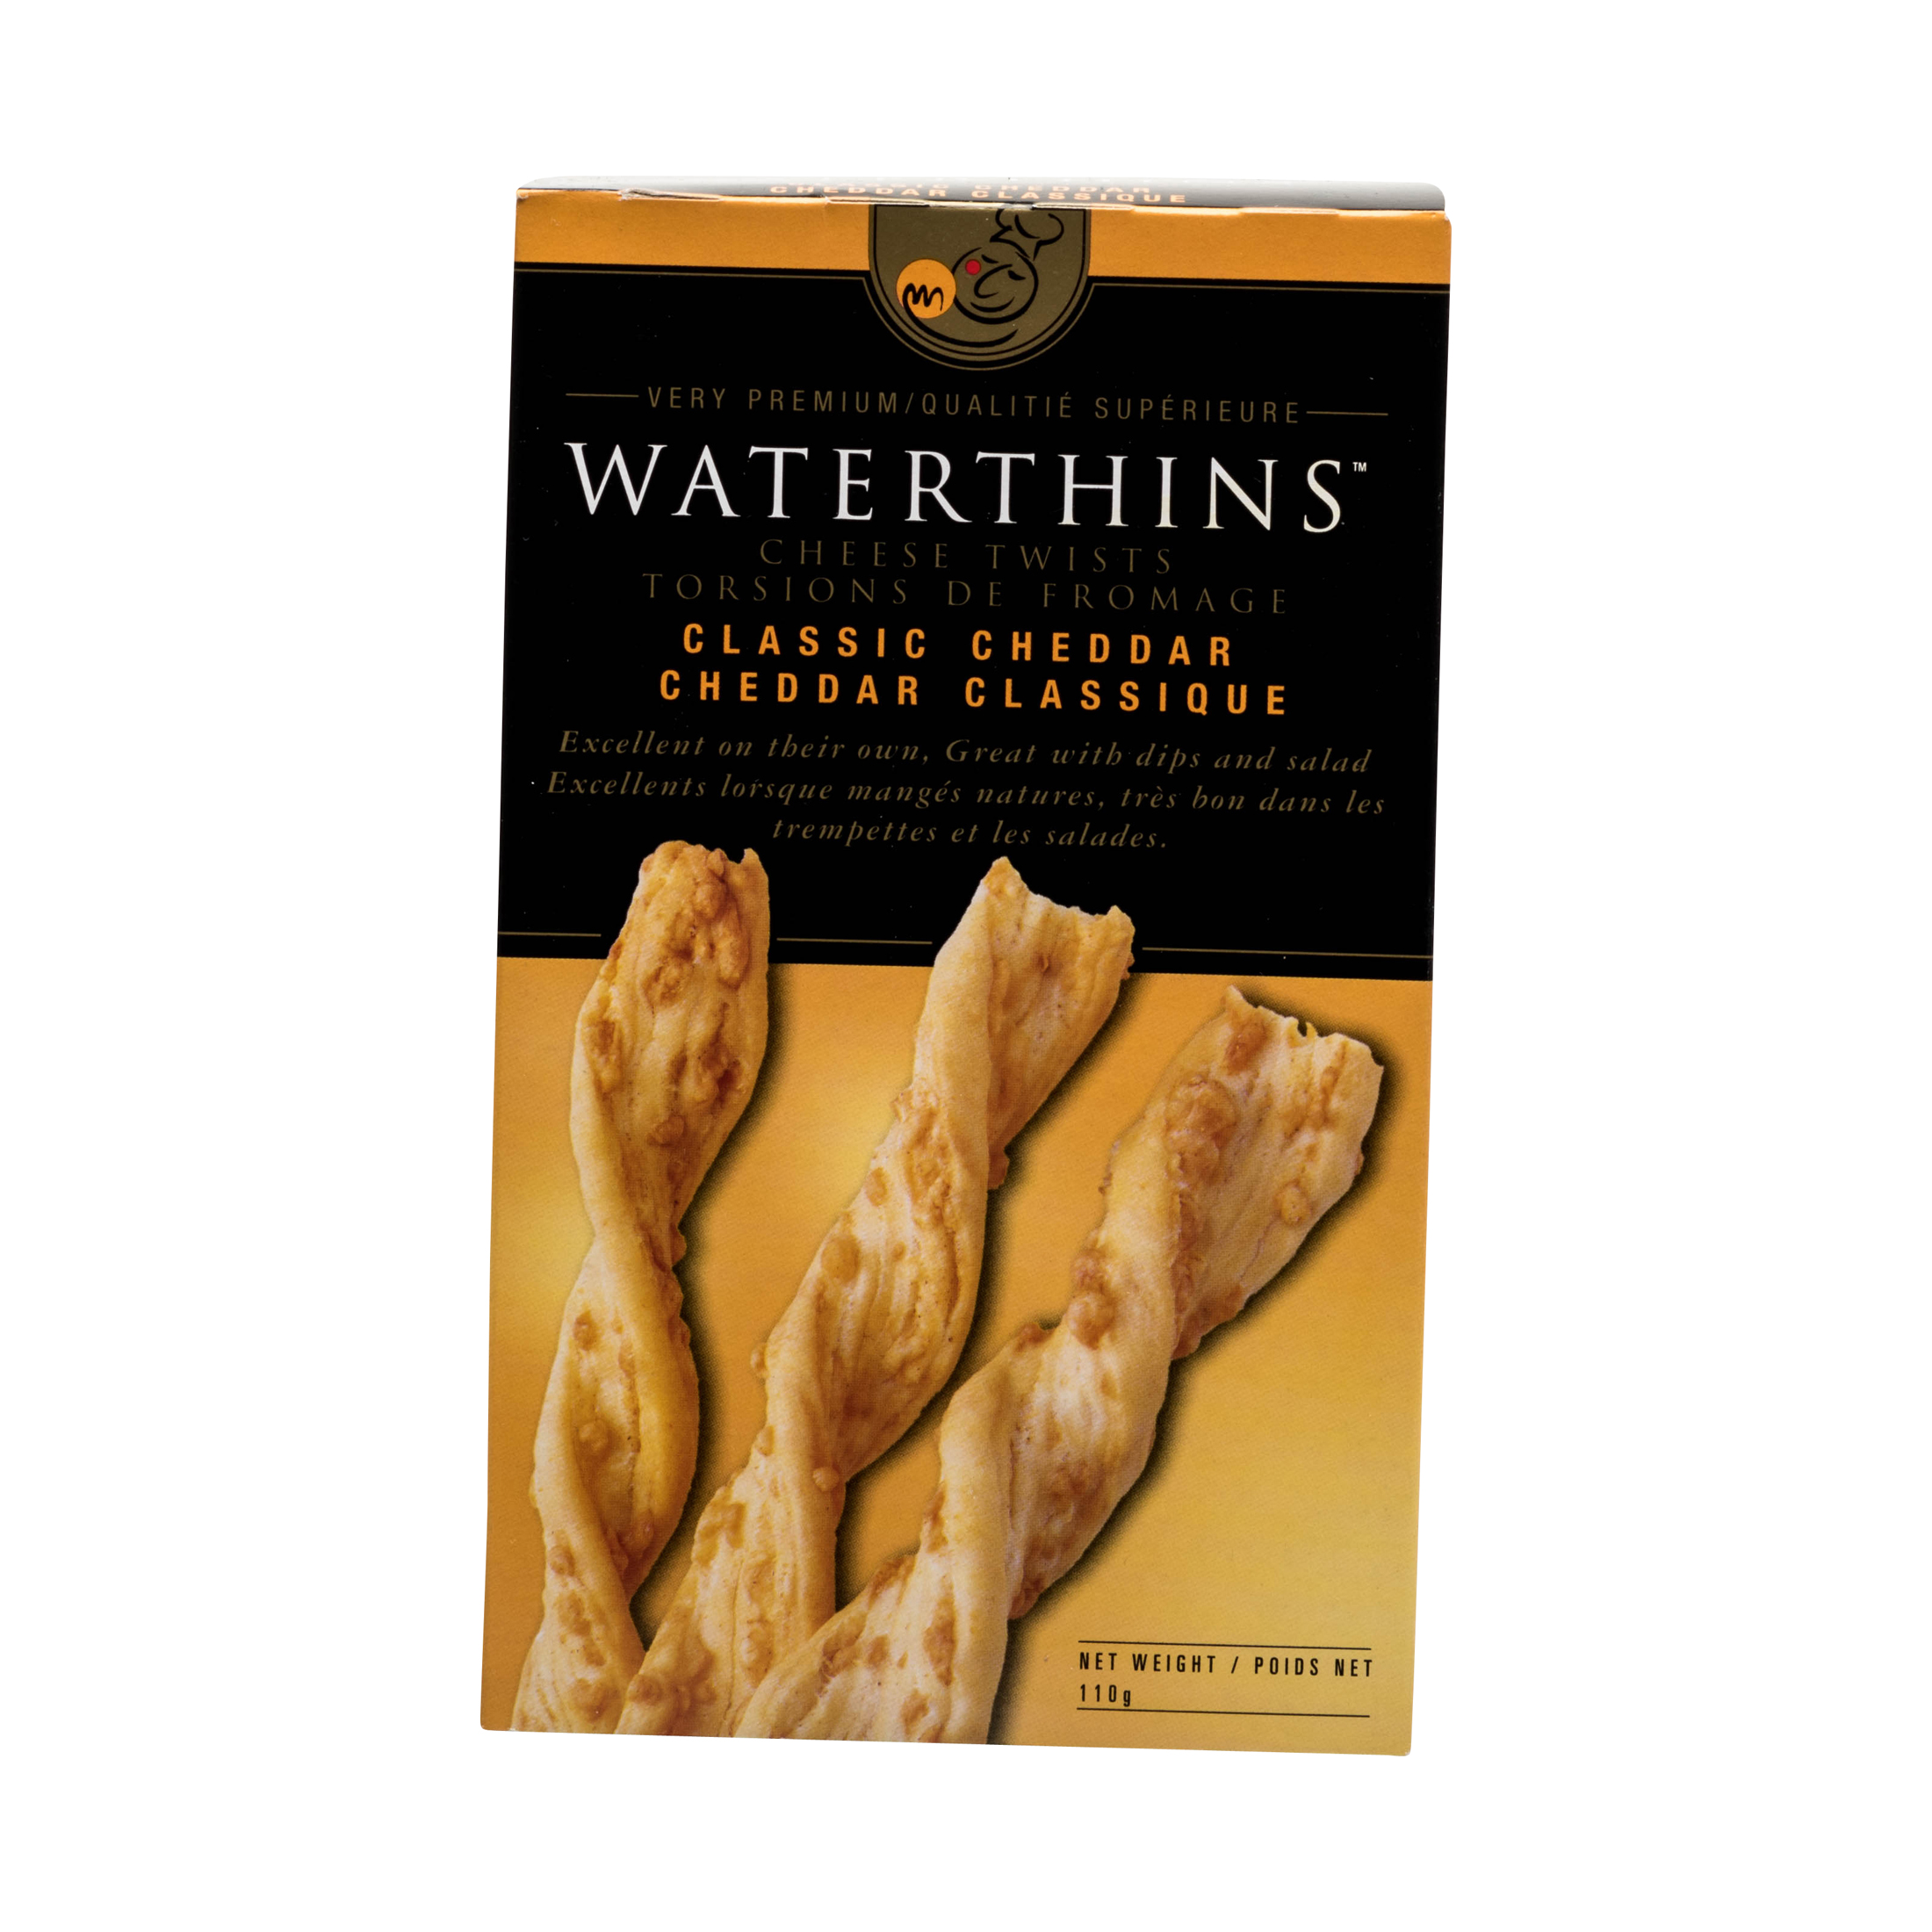 CLASSIC CHEDDAR CHEESE TWISTS